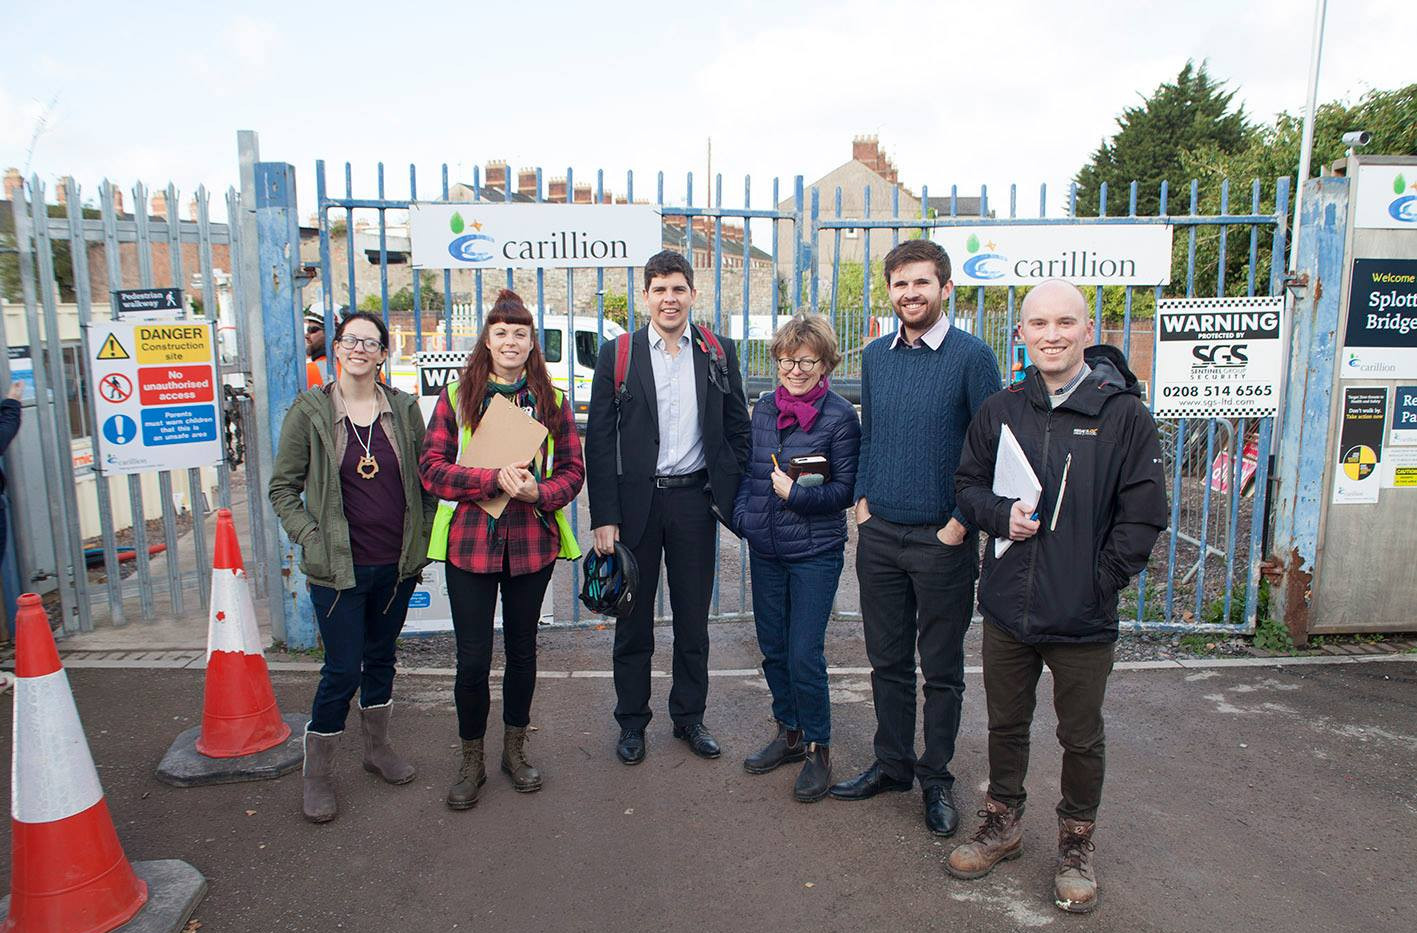 Supported by our local councillors and the Community Land Advisory Service we continued our effots to secure the land for community use.